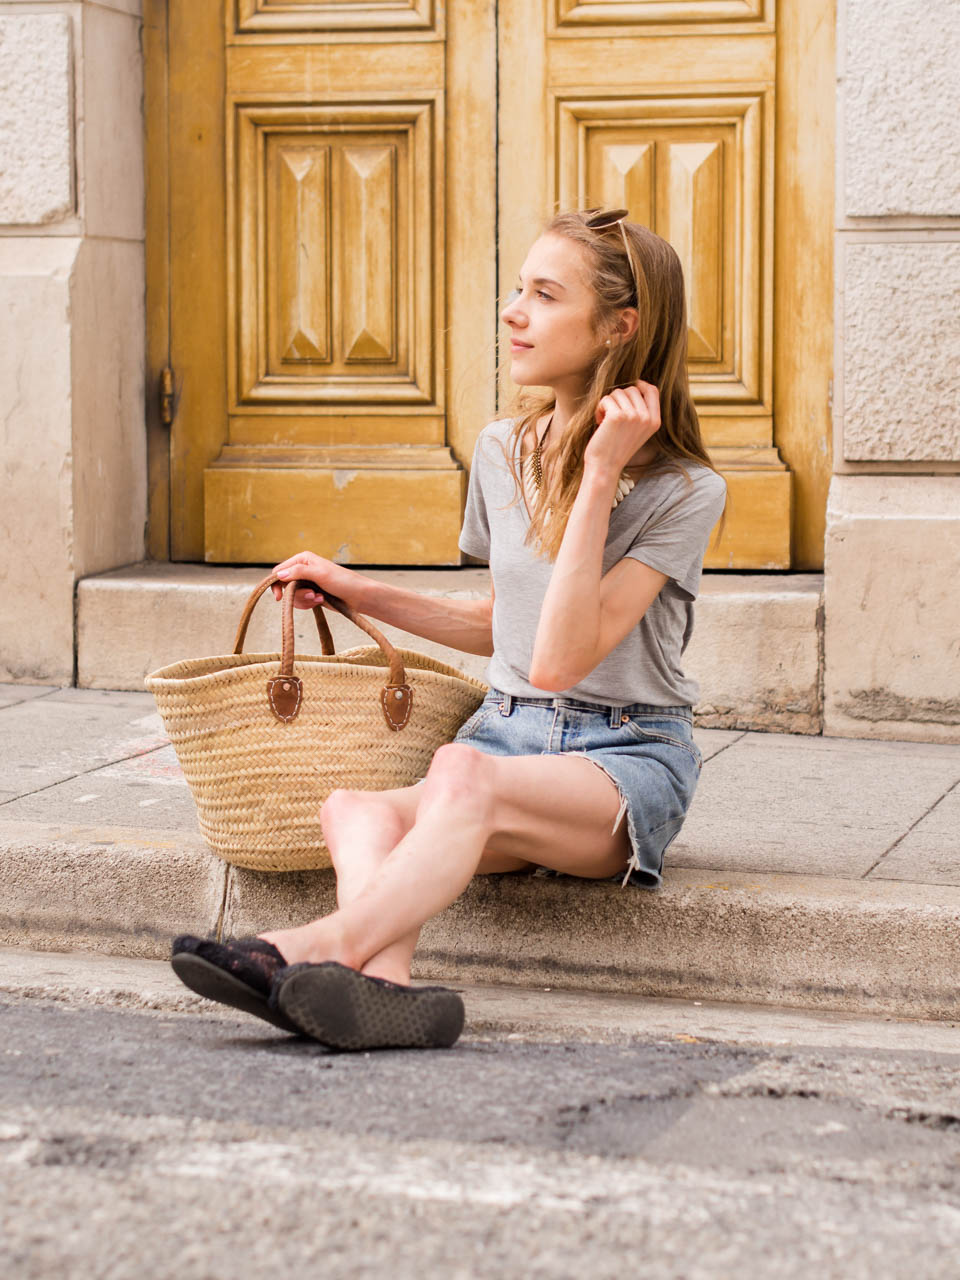 minimal-scandinavian-style-summer-outfit-levis-denim-shorts-basket-bag-in-nice-france-holiday-capsule-wardrobe